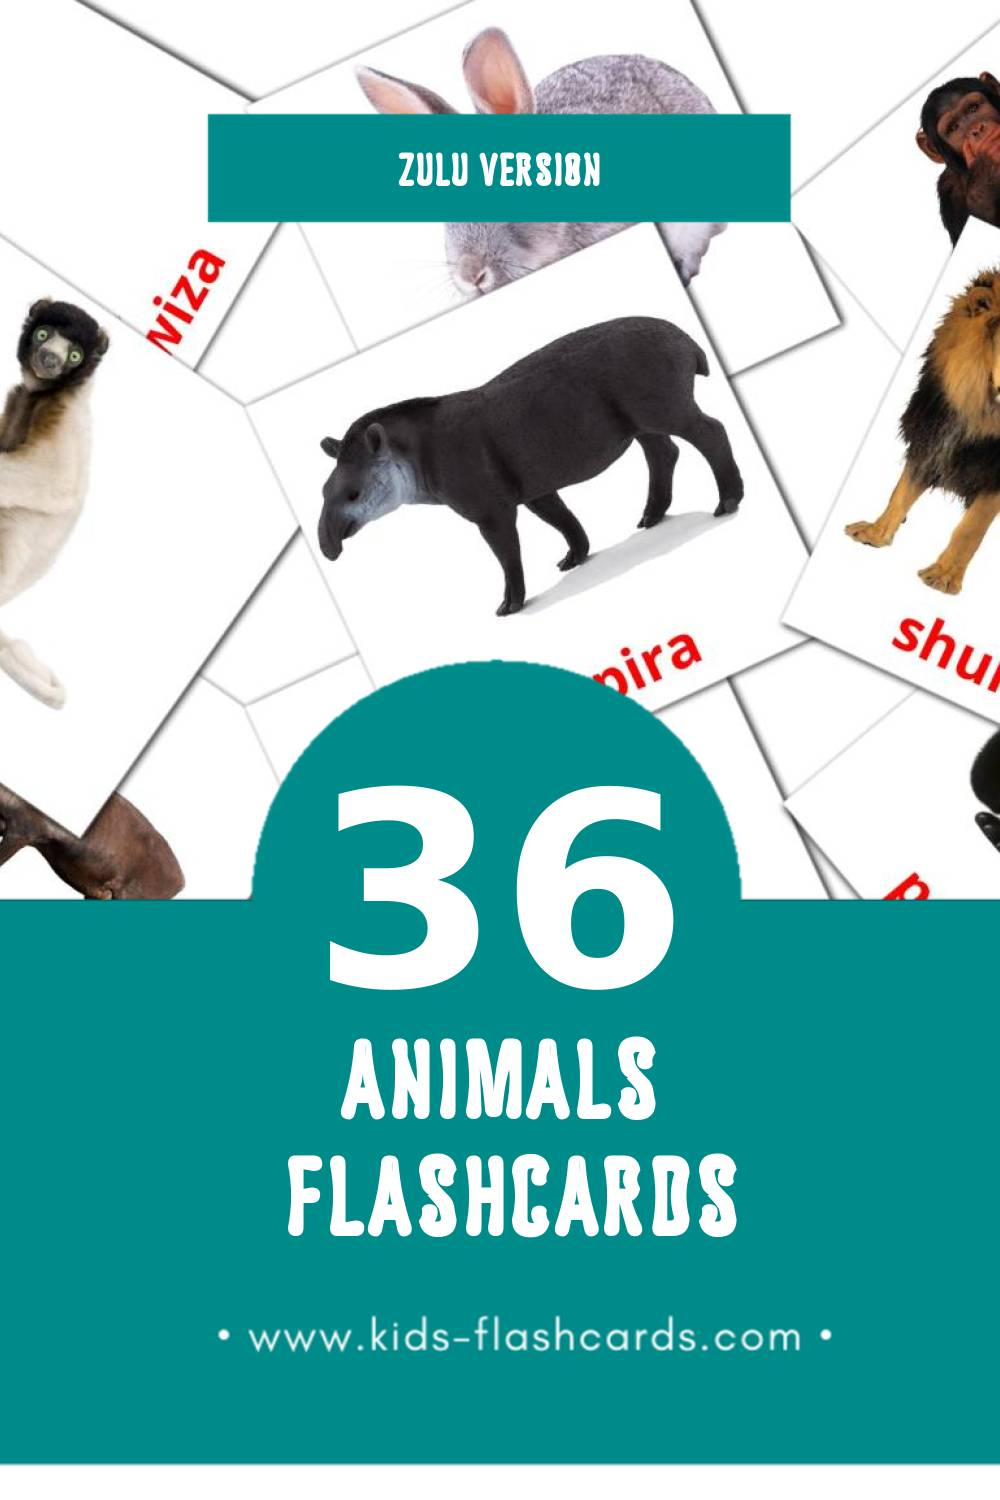 Visual Mhuka Flashcards for Toddlers (36 cards in Zulu)